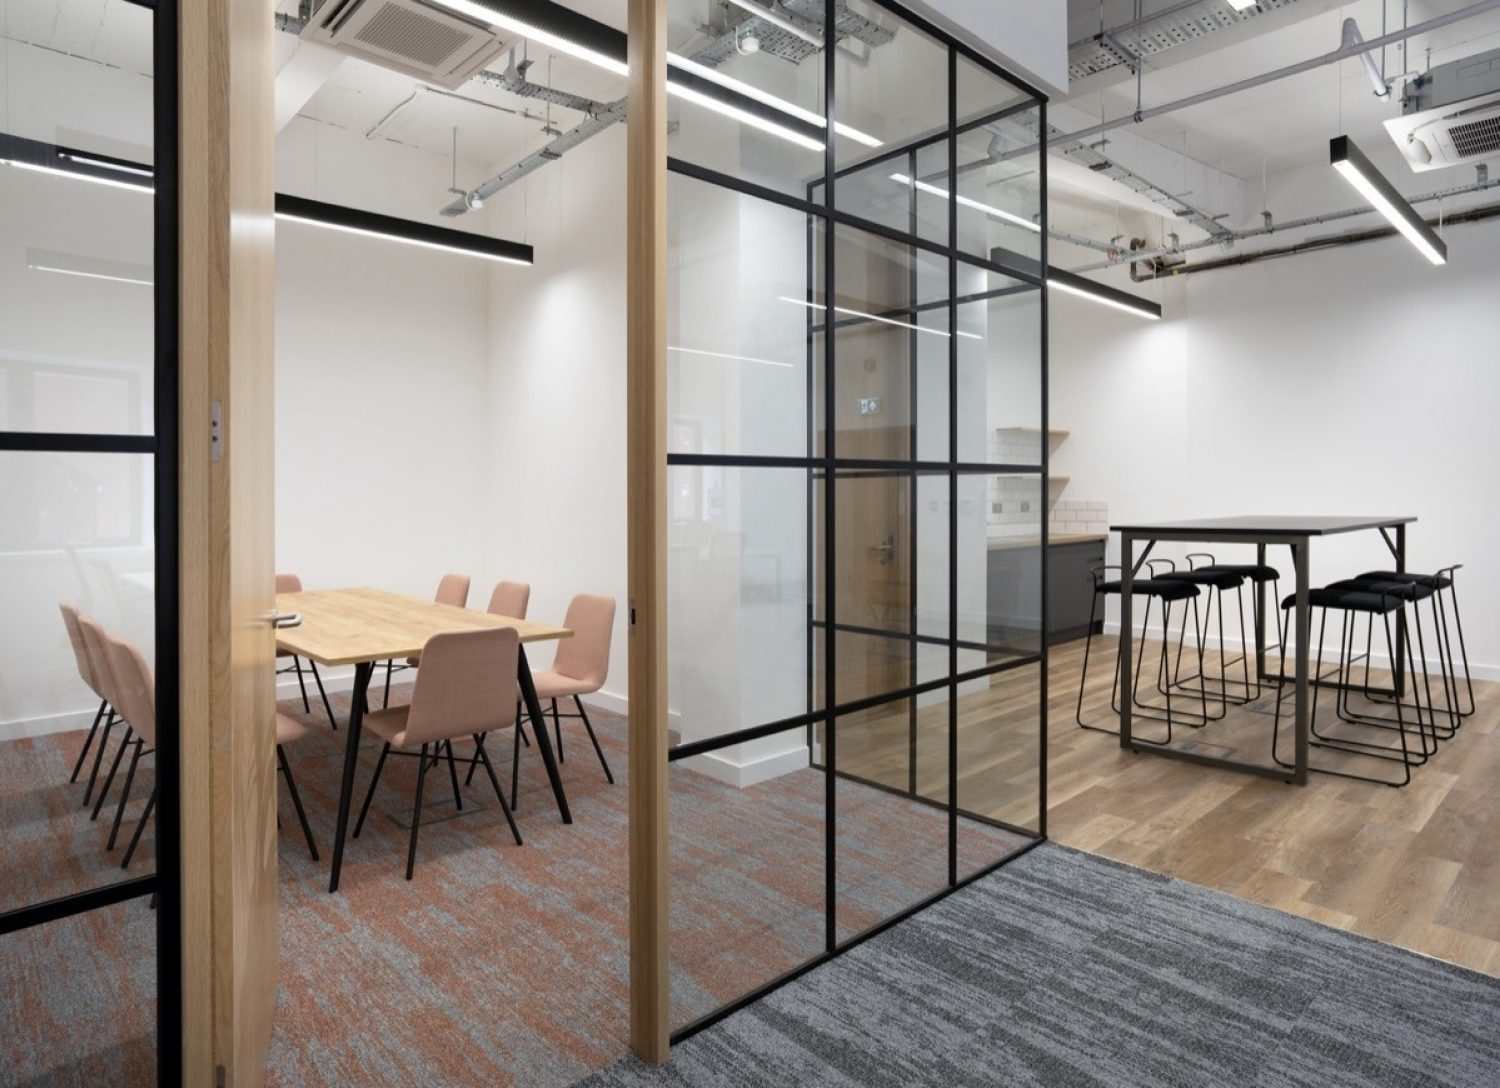 Aegon workplace design for meetings and collaboration